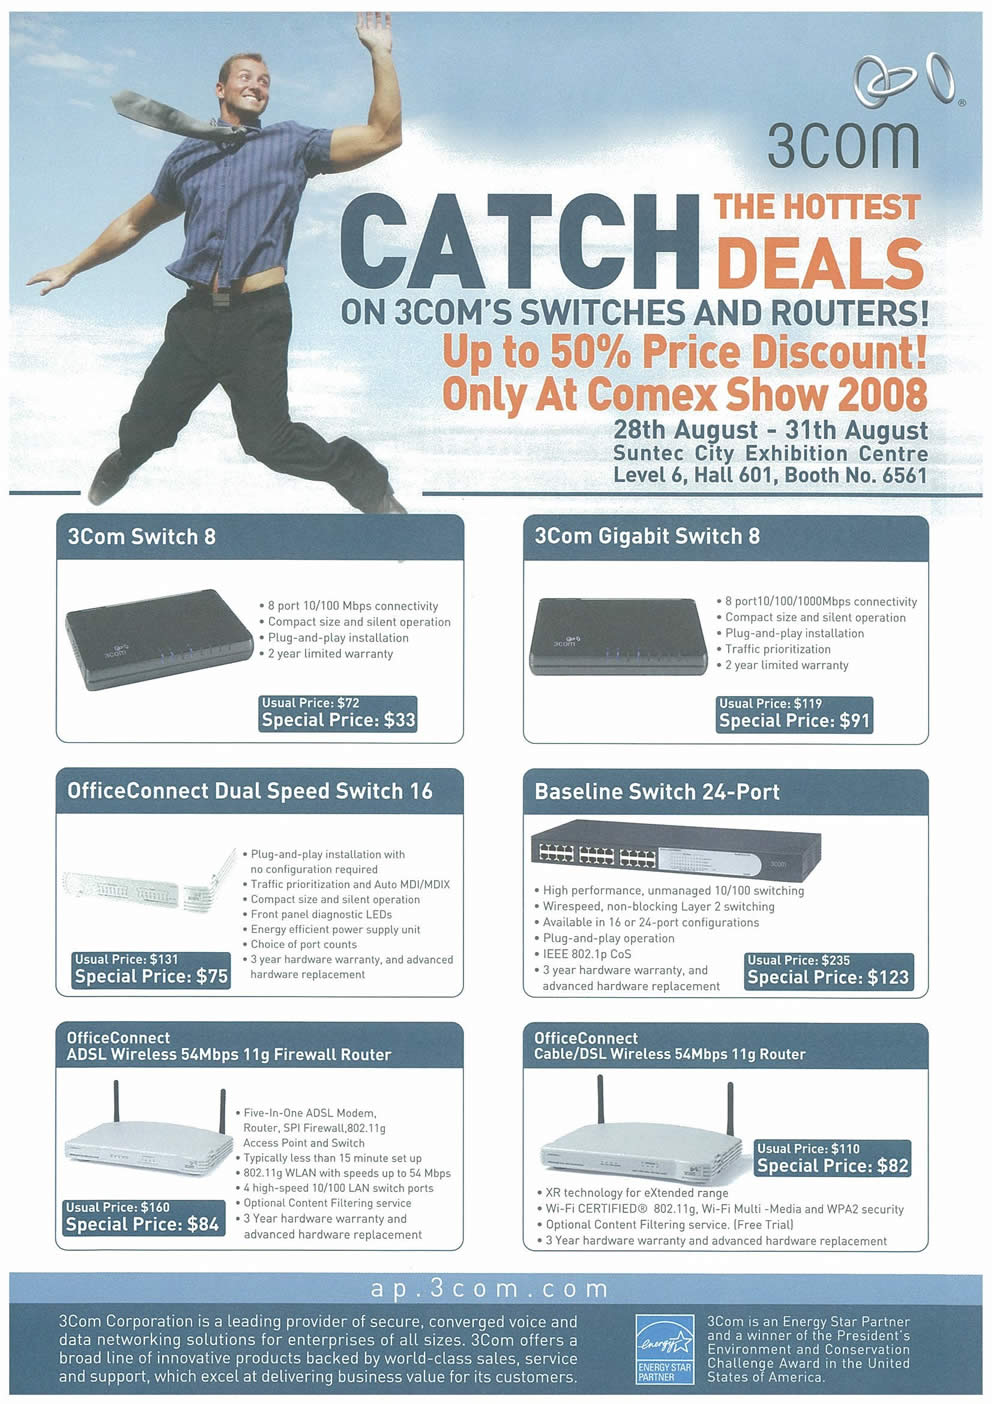 Comex 2008 price list image brochure of 3Com Gigabit Switch Page 1